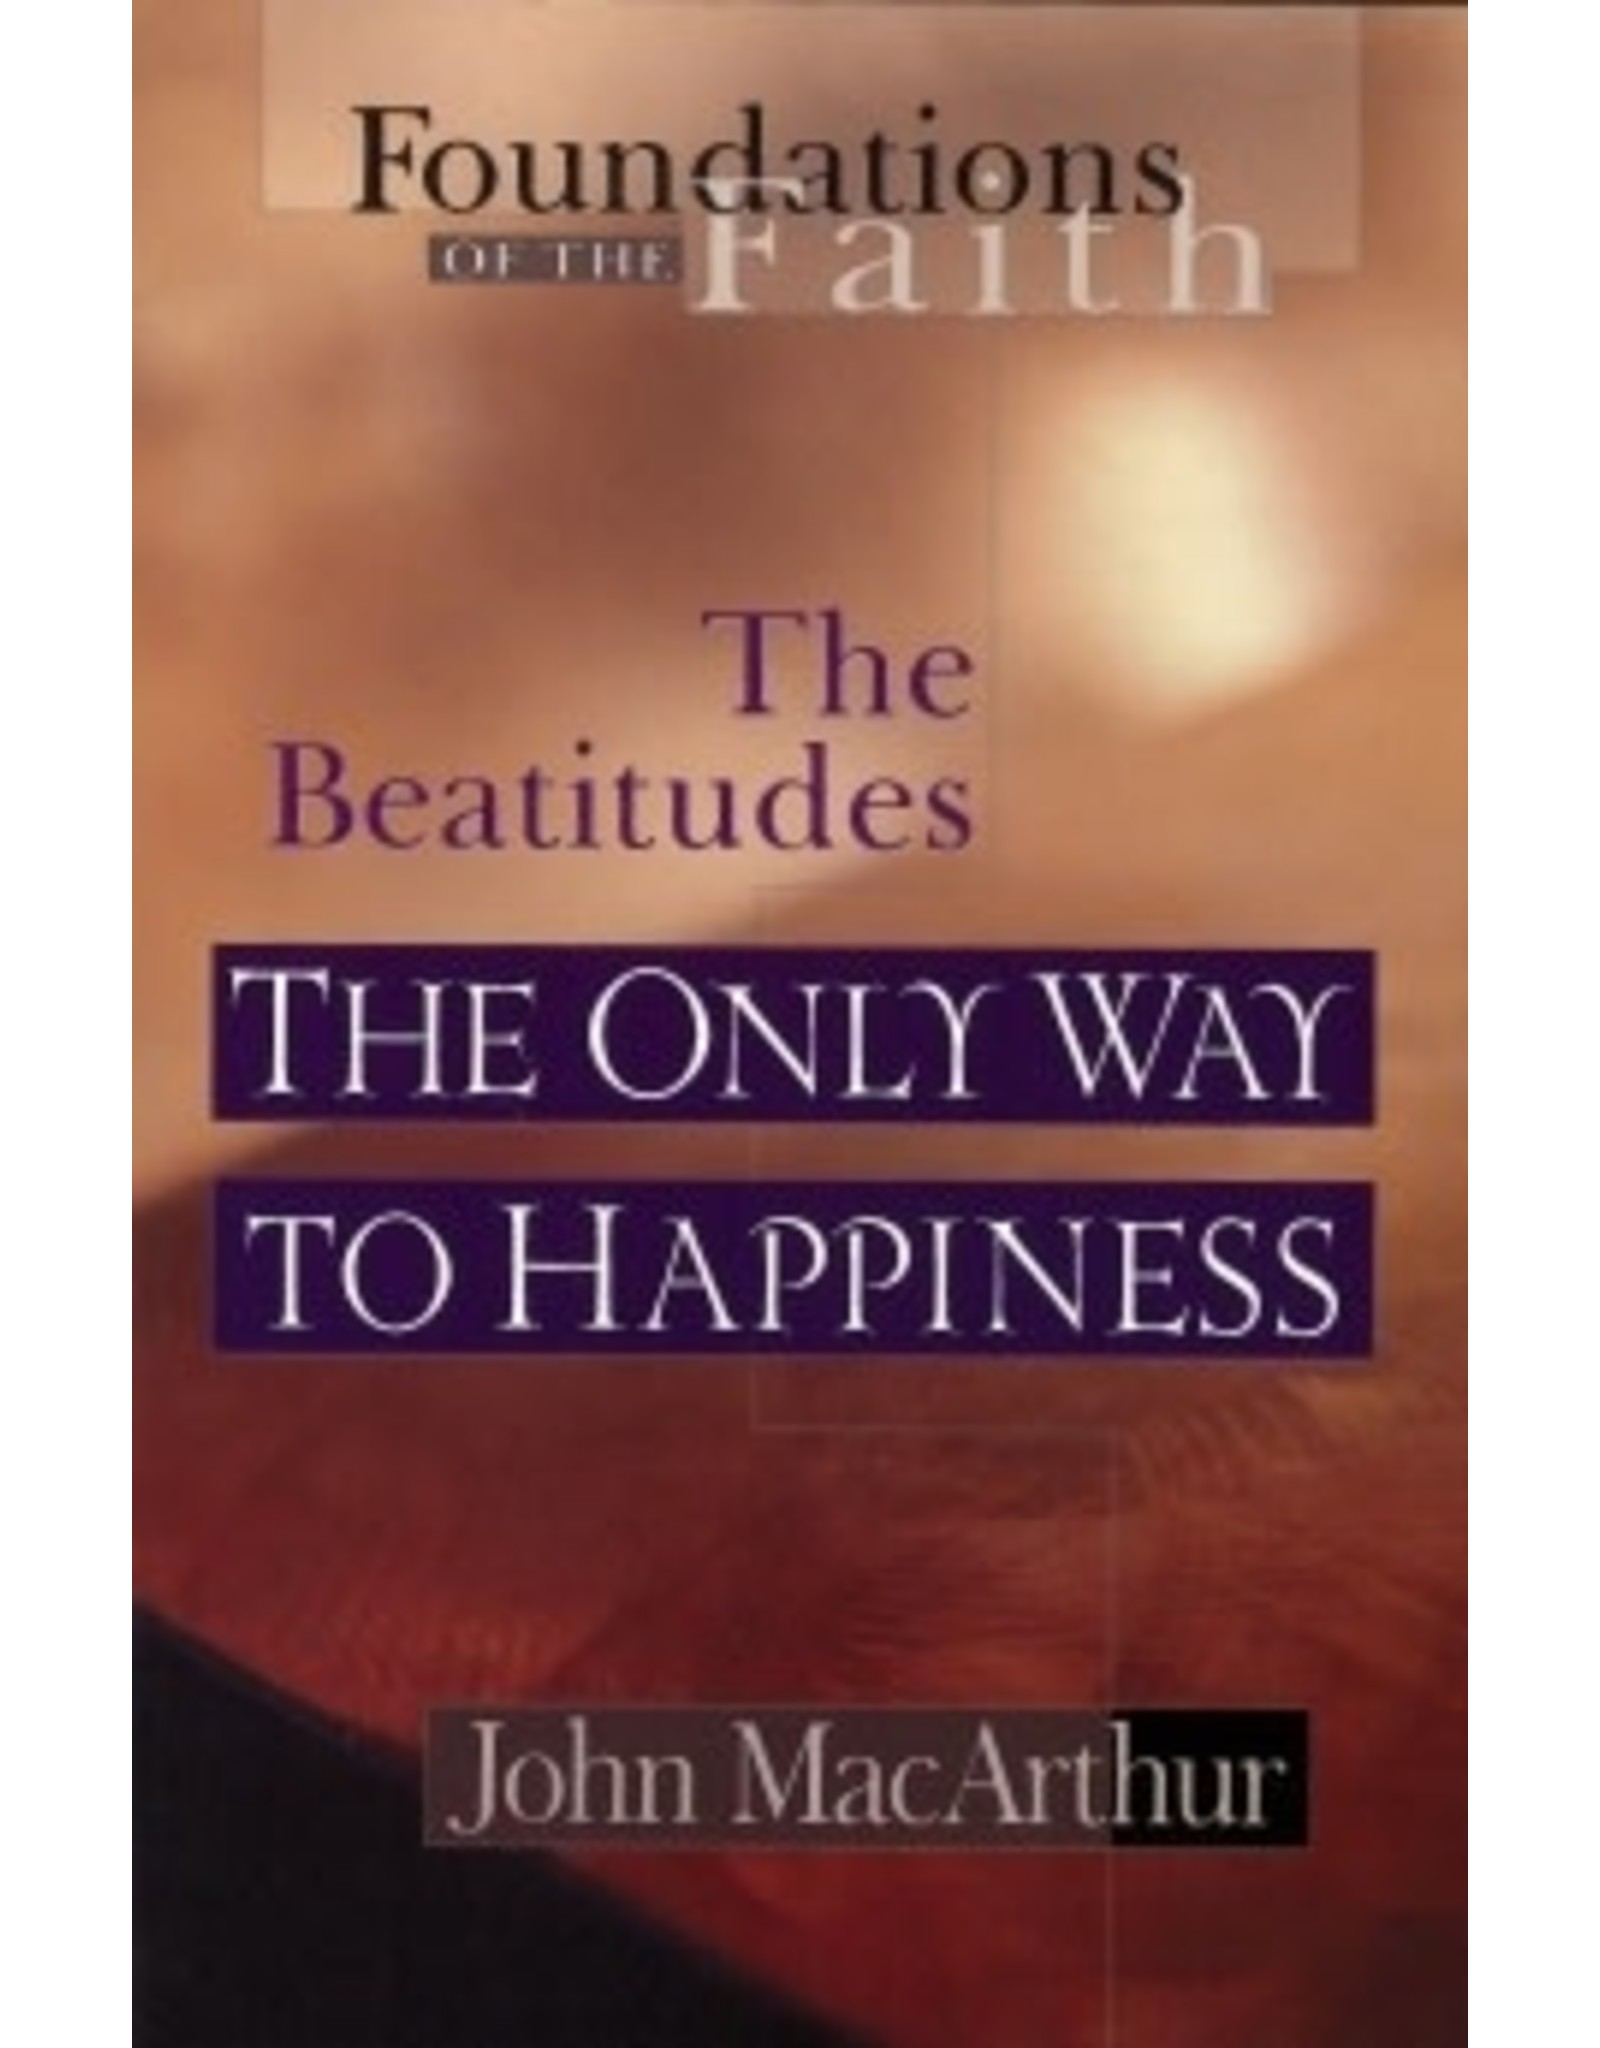 MacArthur The Beatitudes, the Only Way to Happiness